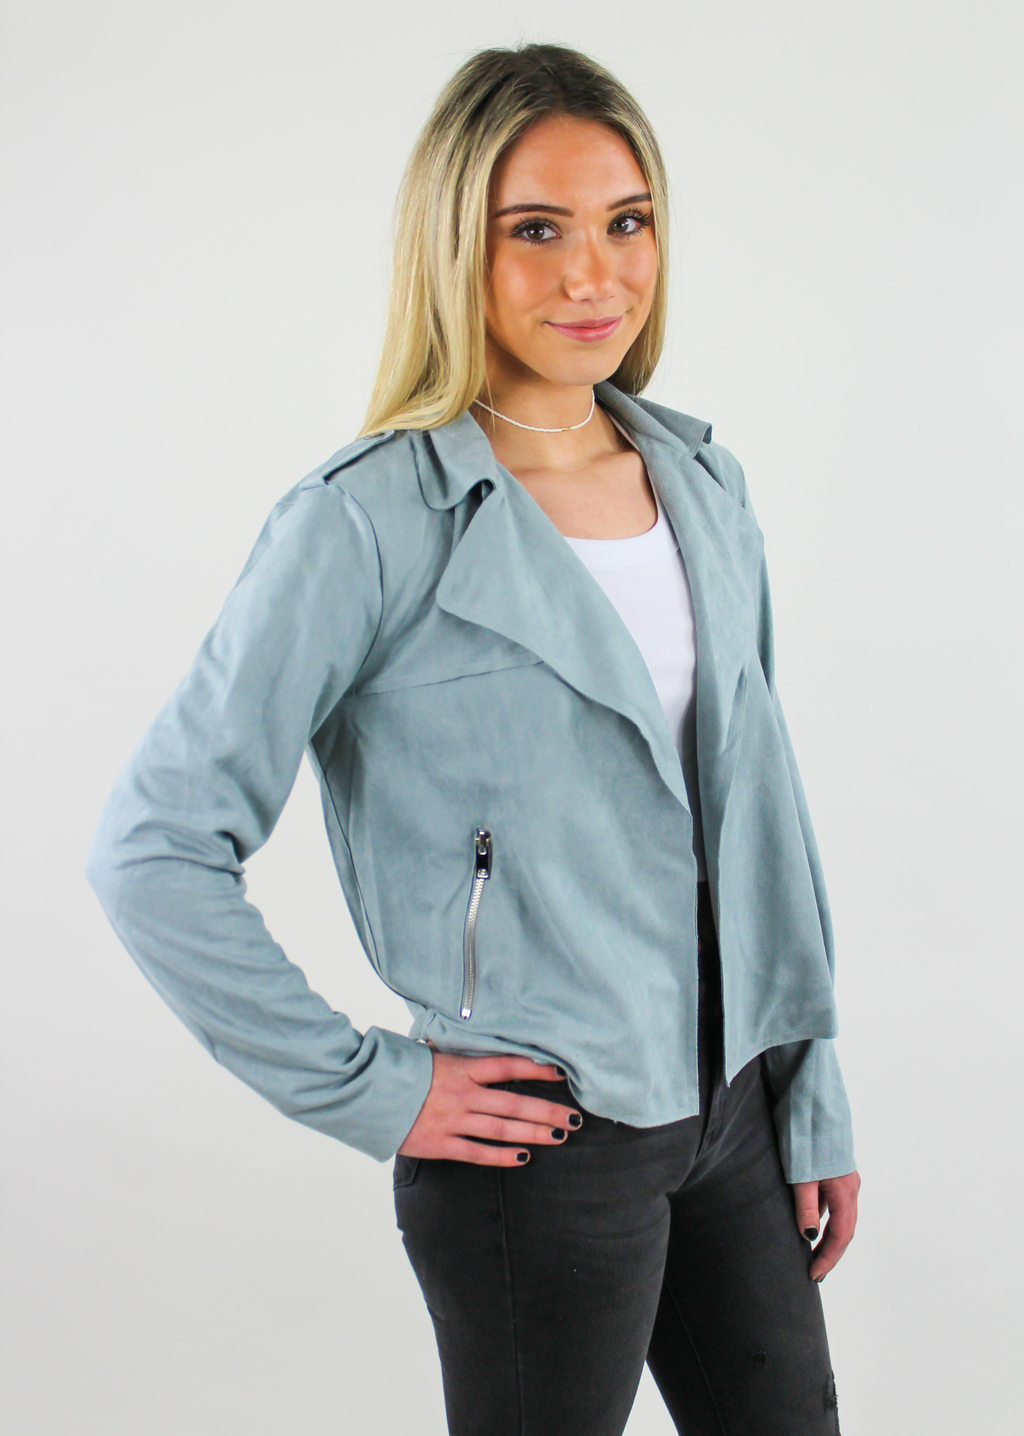 Radio Gaga Jacket ★ Teal - Rock N Rags